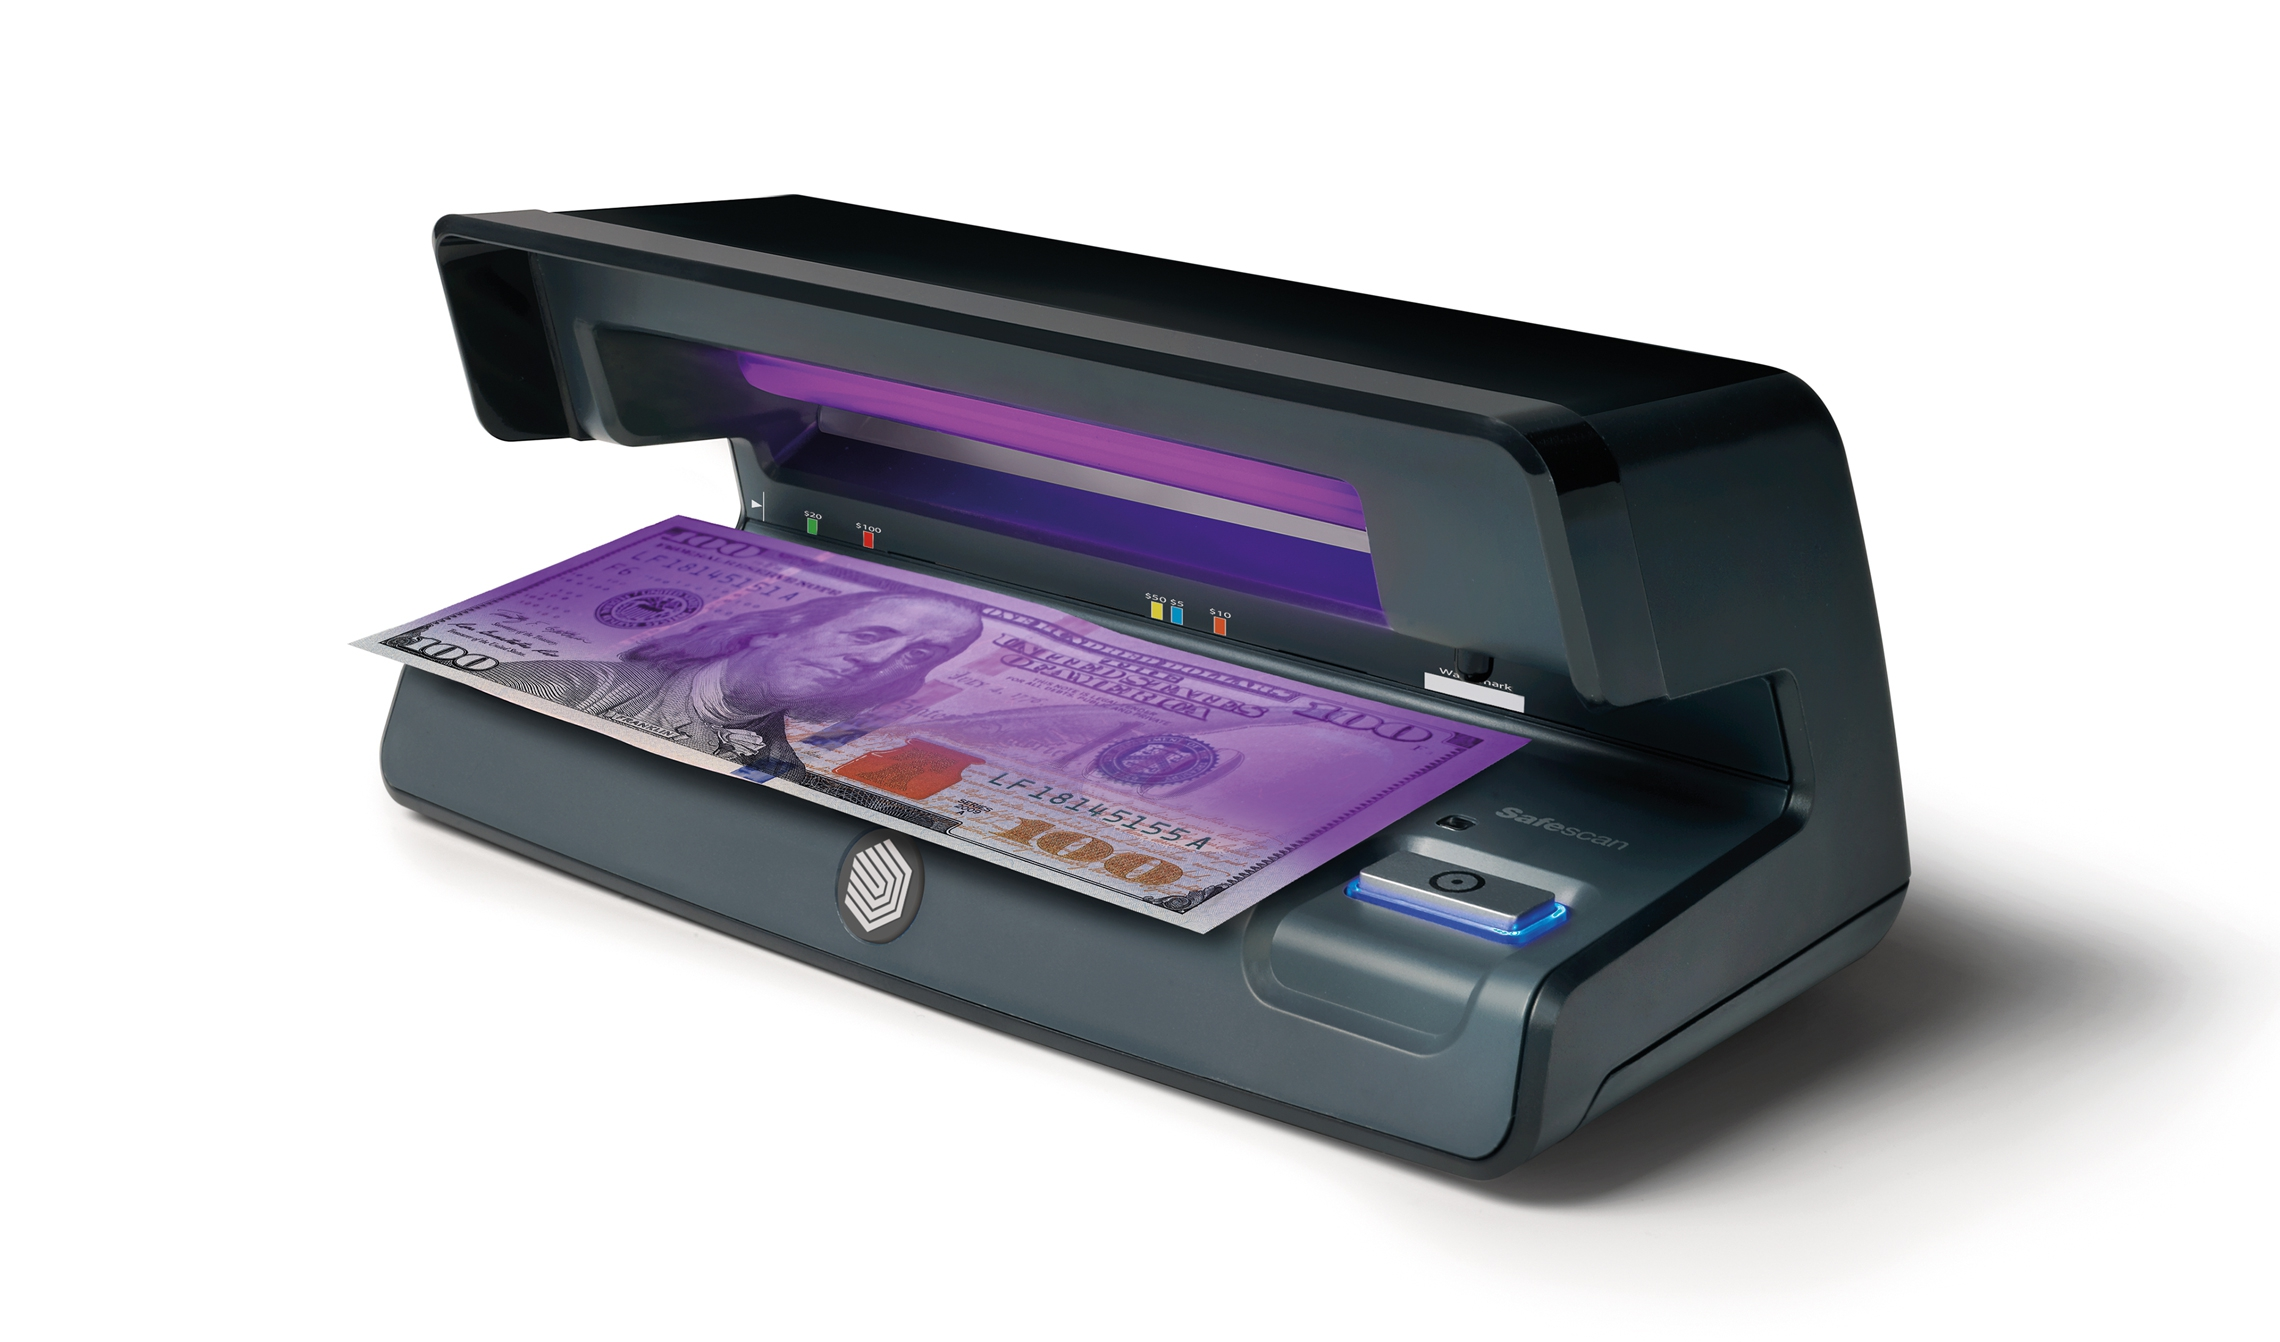 safescan-70-uv-counterfeit-detector